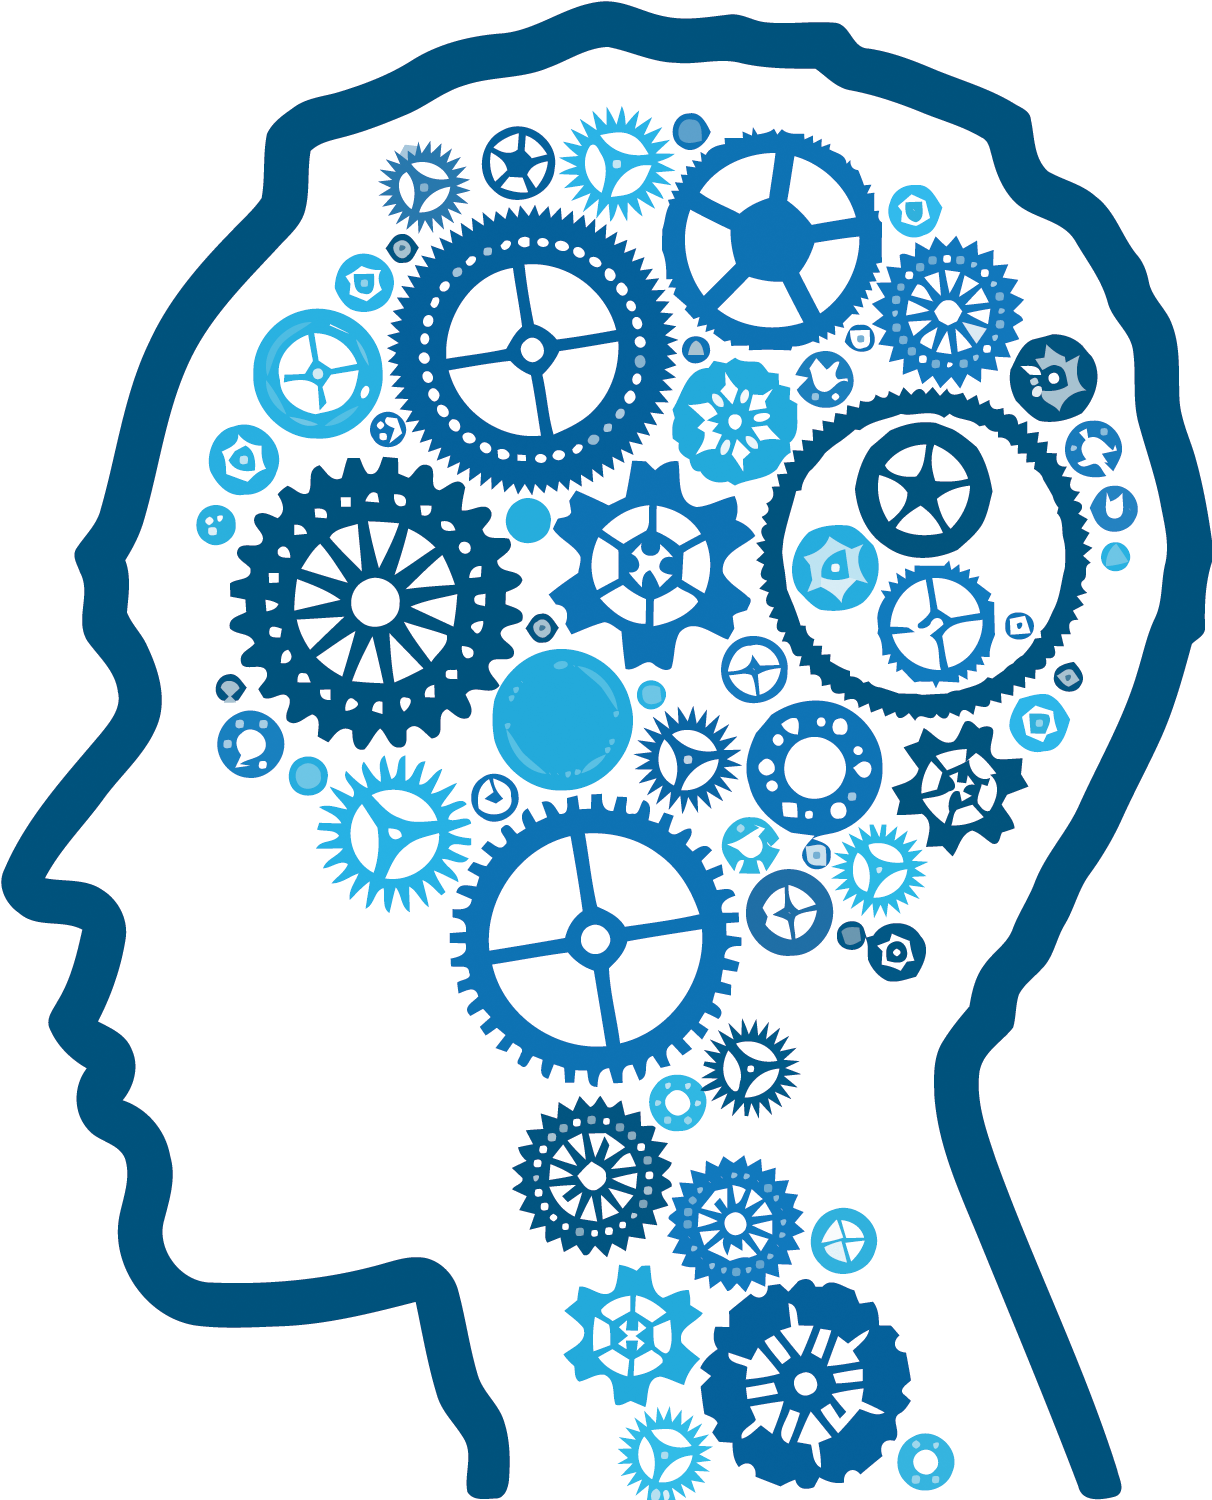 Session 4 – Executive Function & The Brain